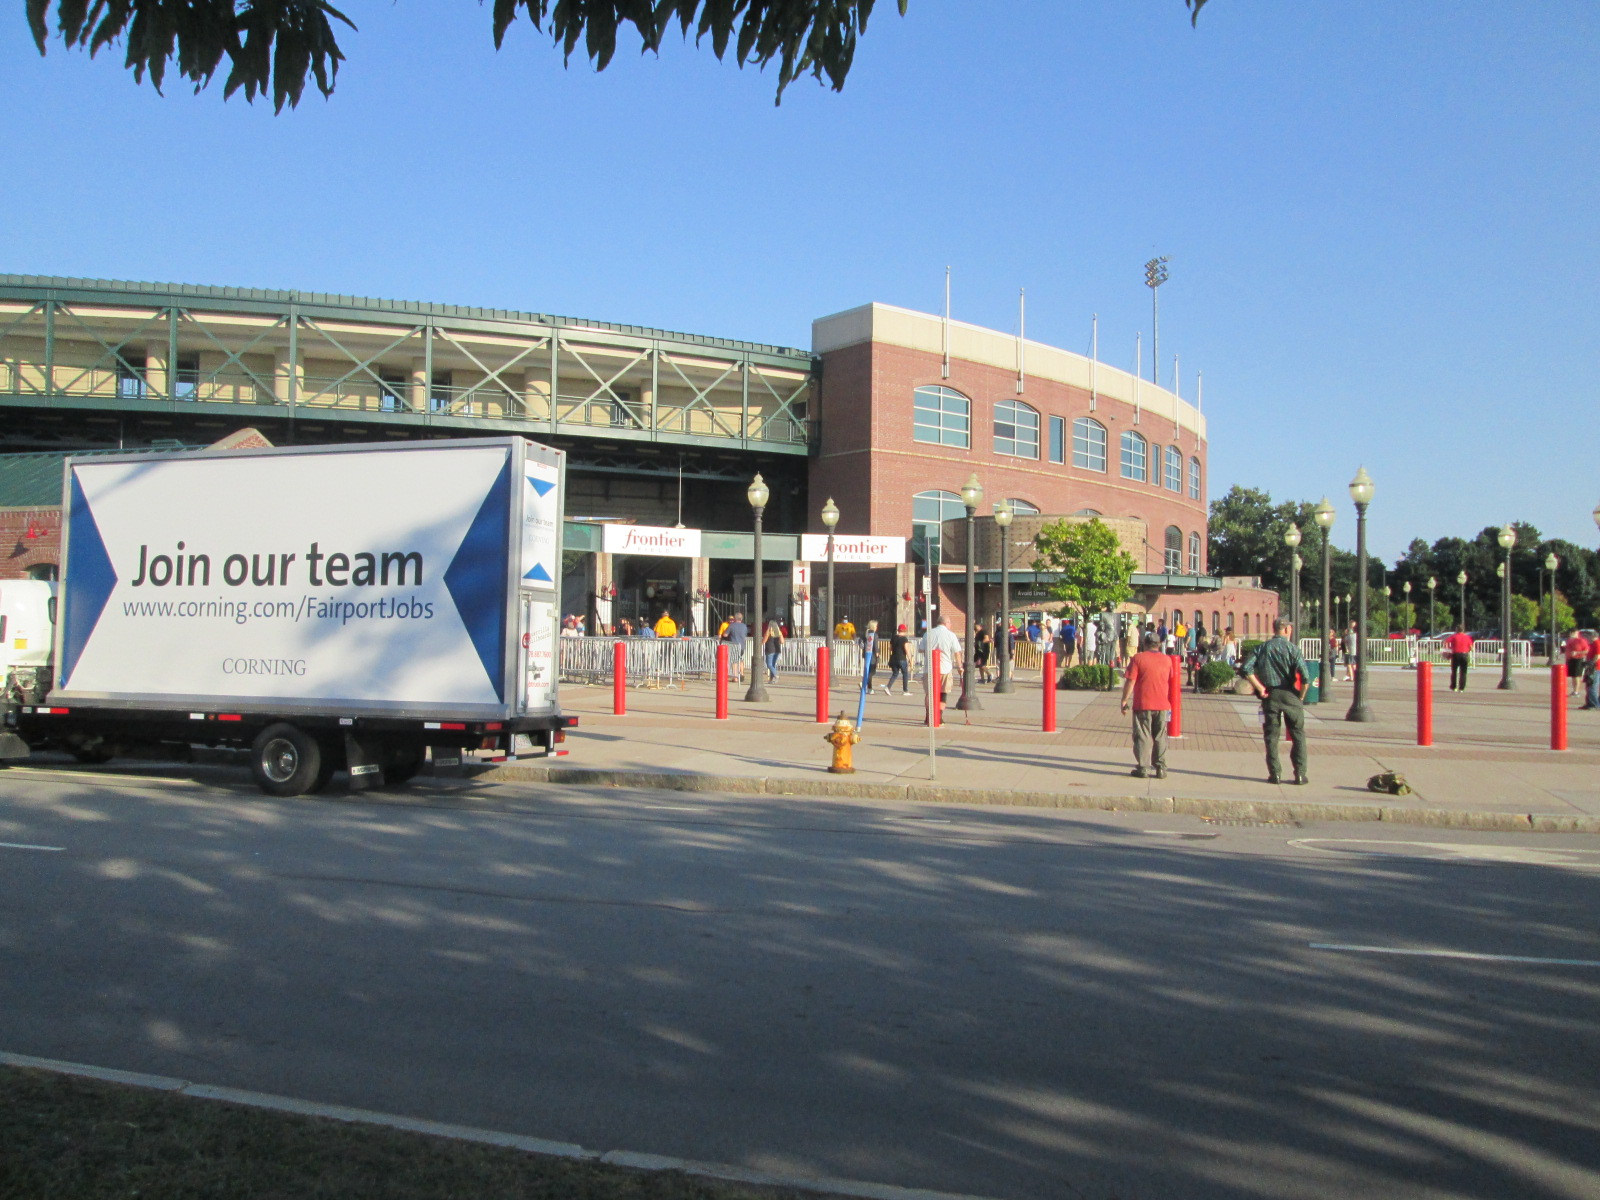 Join Our Team Mobile Billboard at Frontier Field in Rochester NY.